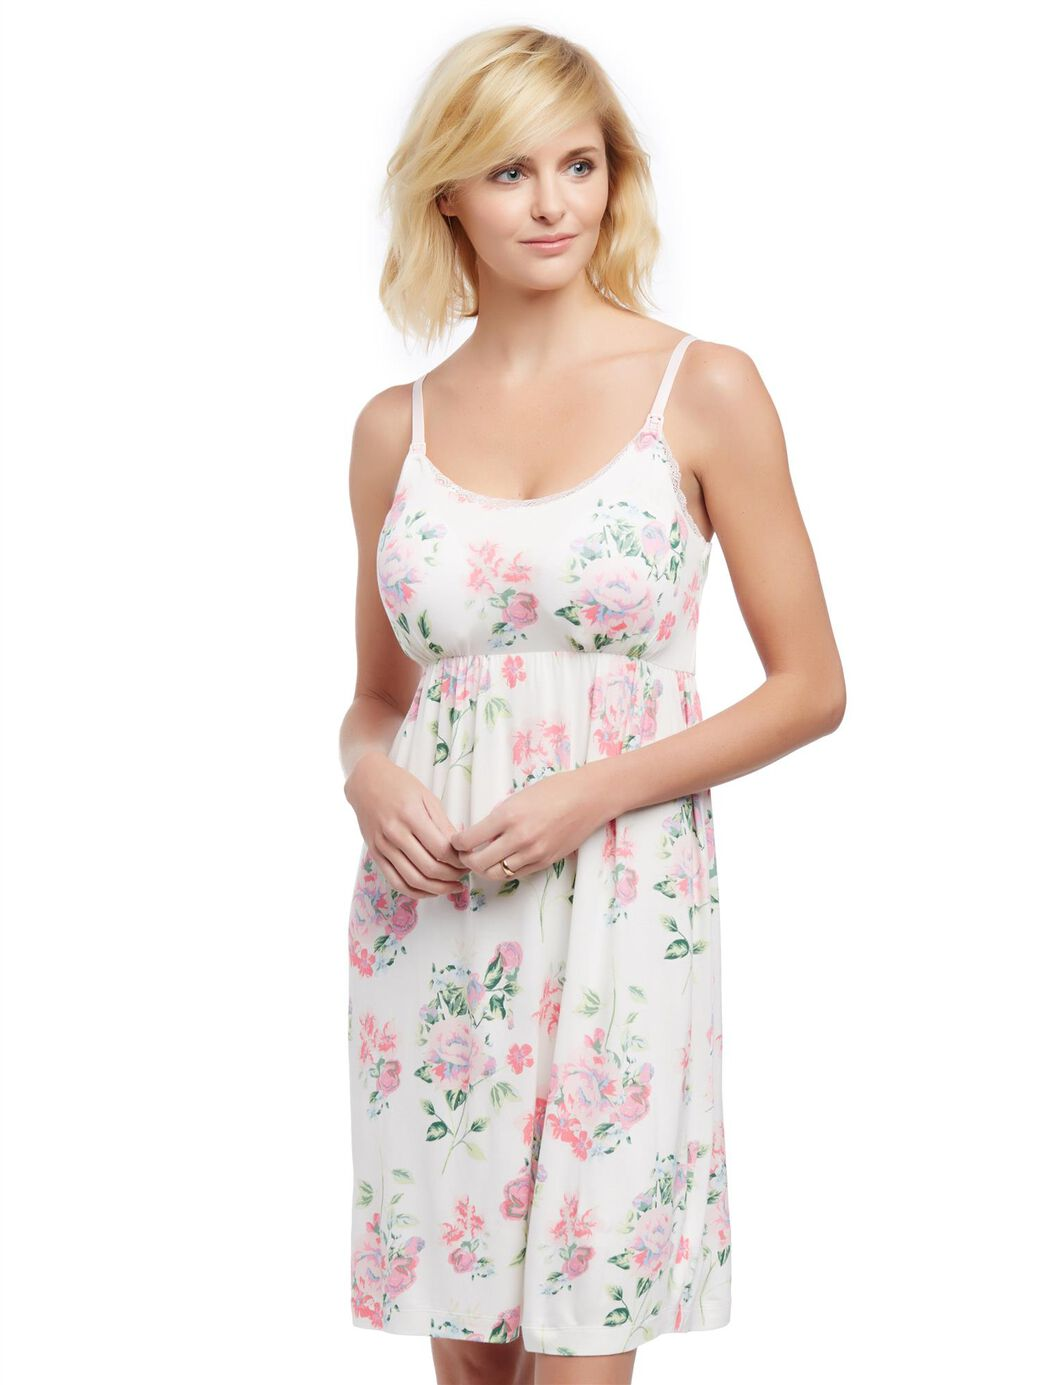 Bump in the night nursing nightgown floral motherhood maternity bump in the night nursing nightgown floral floral ombrellifo Choice Image